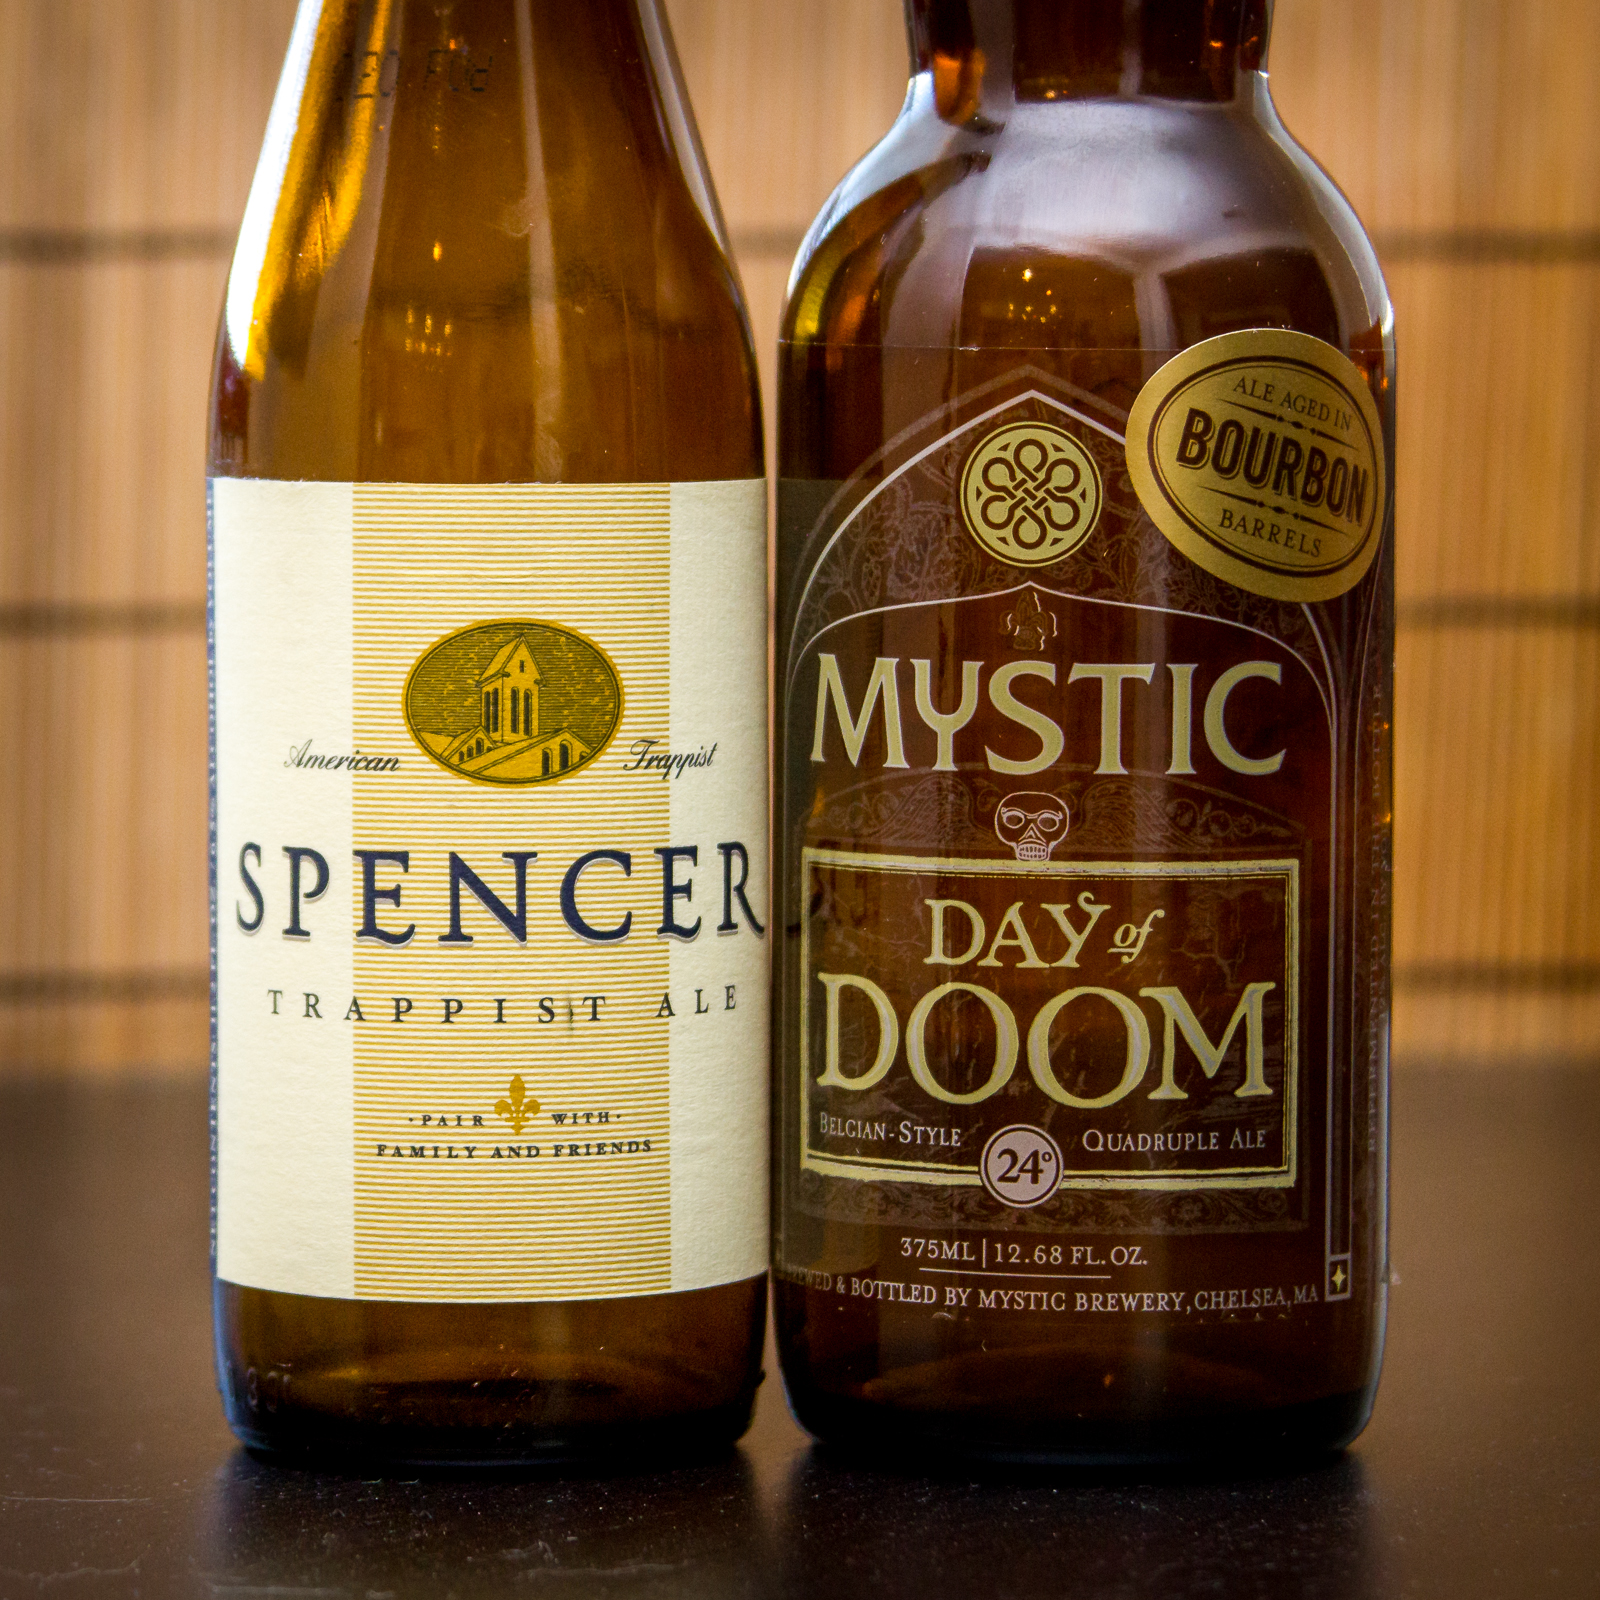 Mystic Brewing and Spencer Trappist